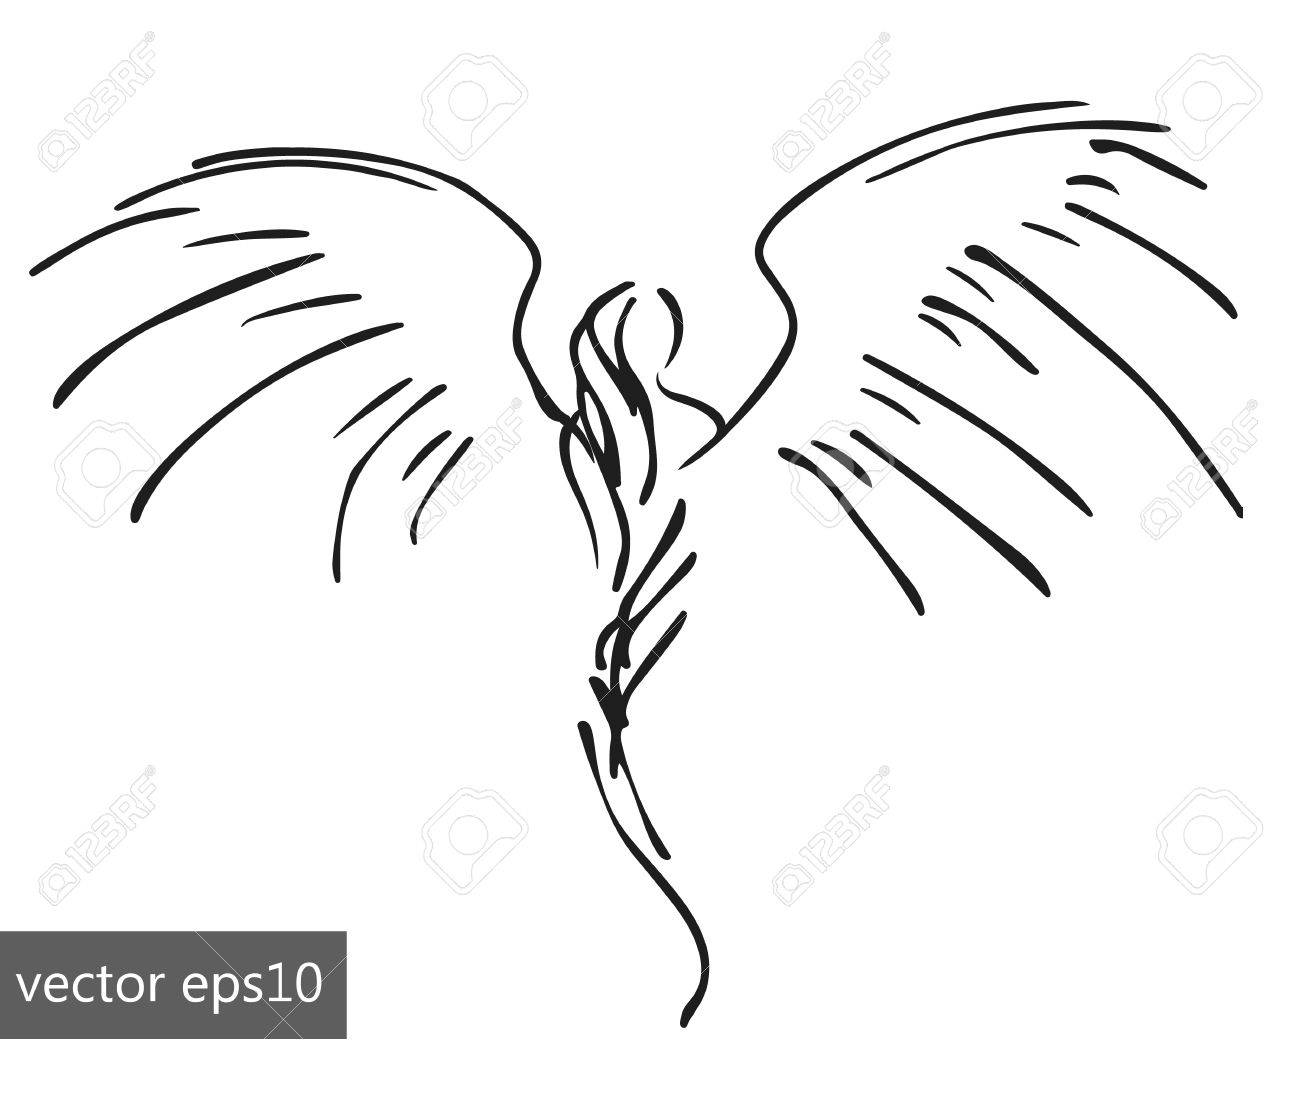 Hand drawn pinstriping angel sketch simple vector illustration stock vector 69343367